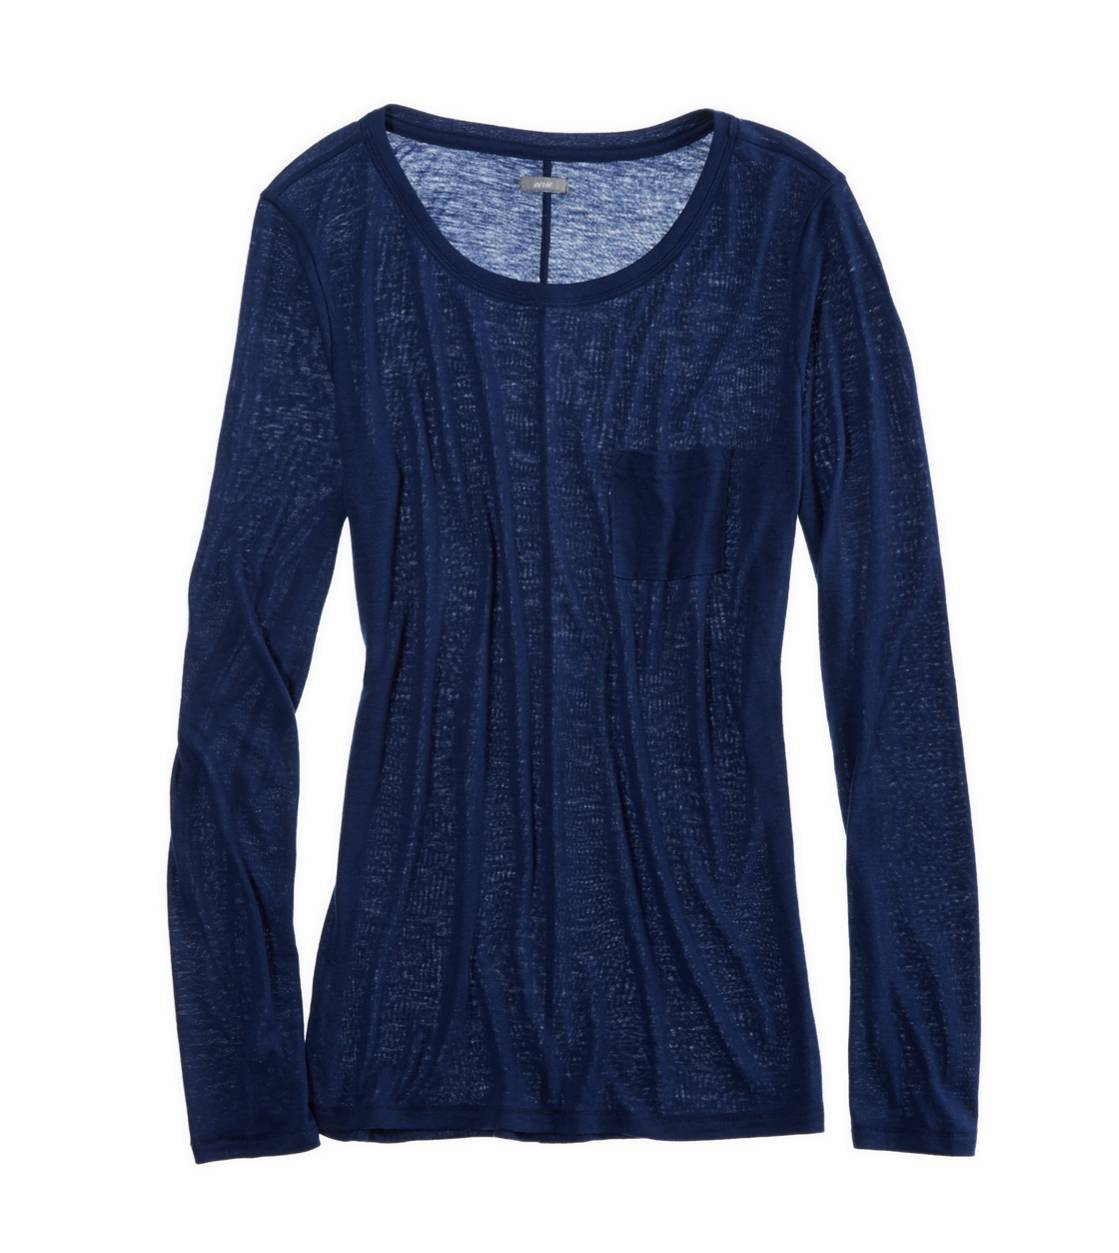 Odyssey Blue Aerie Comfiest Pocket T-Shirt